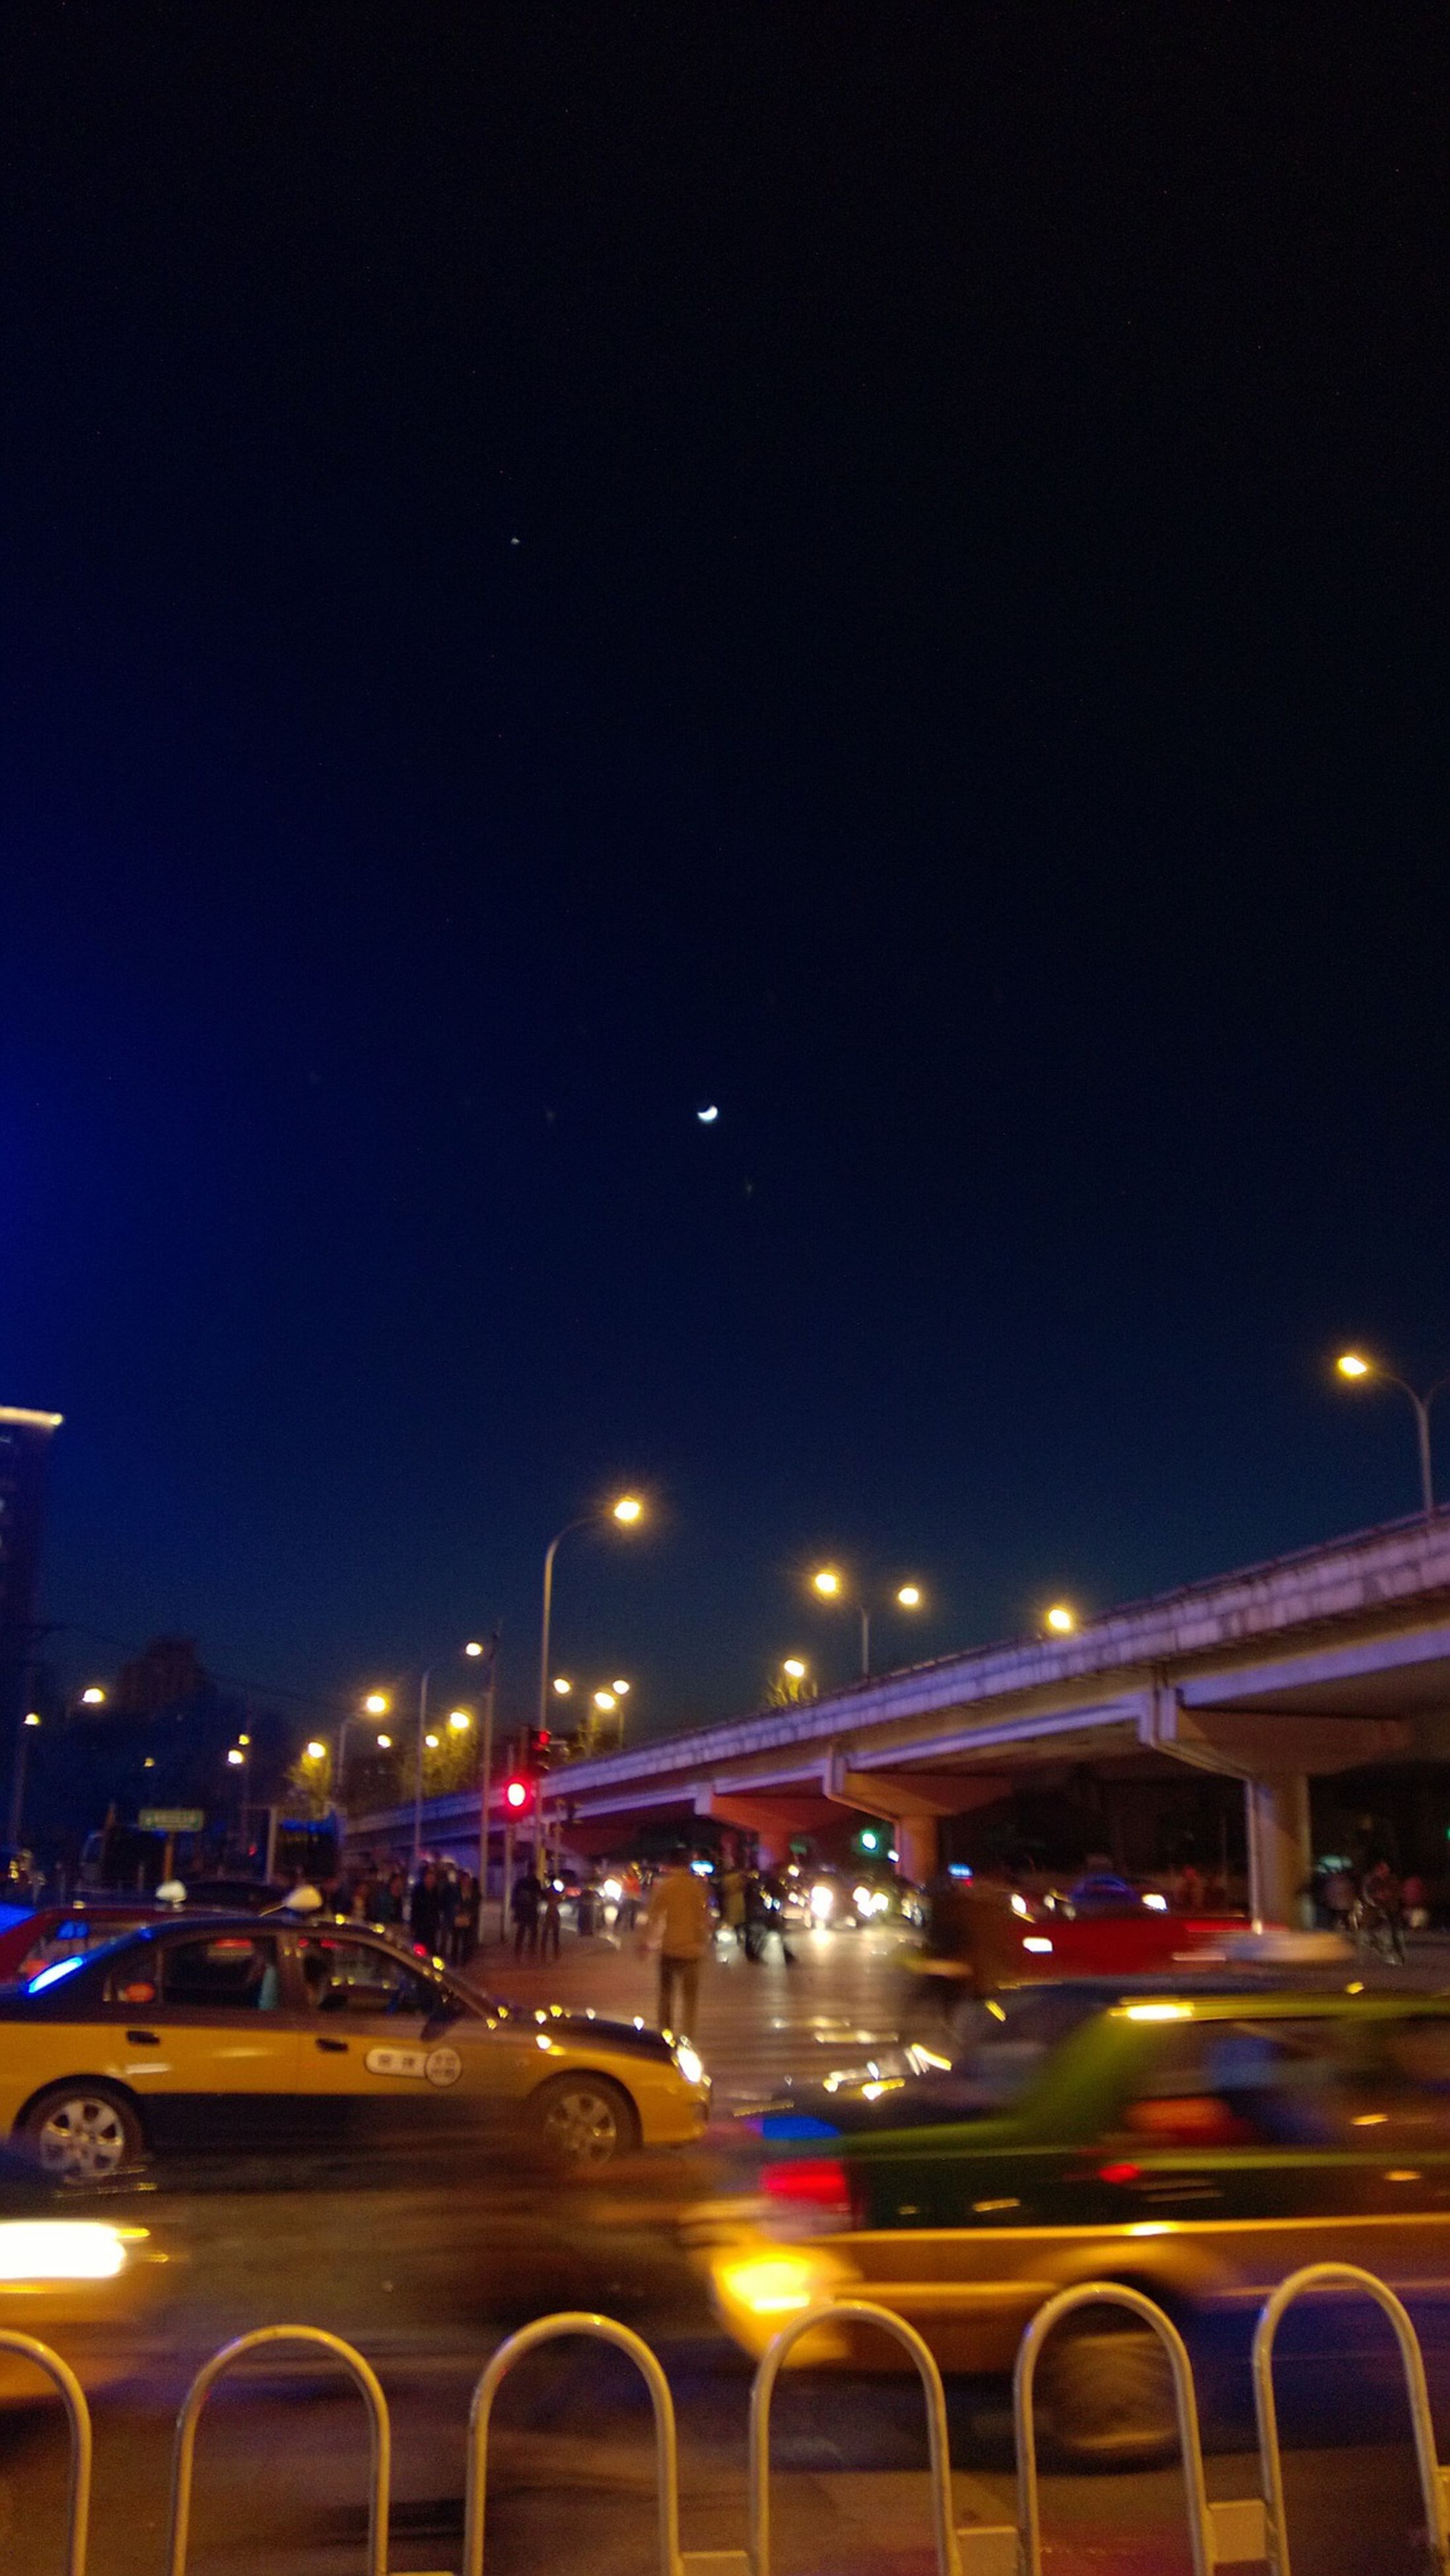 illuminated, transportation, night, car, mode of transport, land vehicle, street light, street, clear sky, road, city, traffic, building exterior, copy space, built structure, architecture, lighting equipment, headlight, on the move, city street